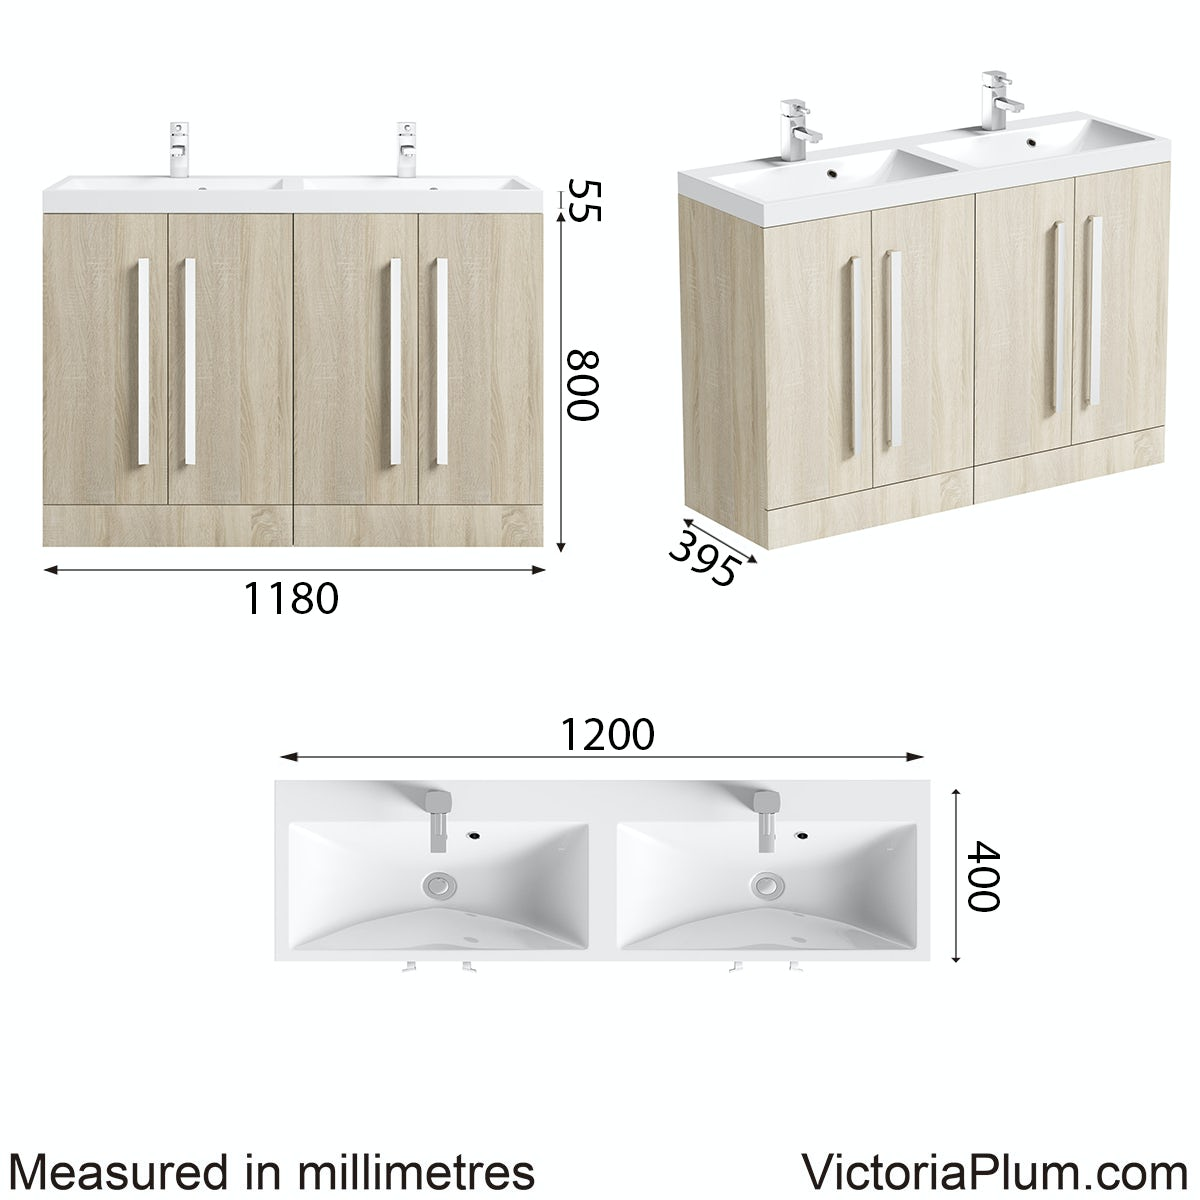 Dimensions for Orchard Wye oak double basin unit 1200mm